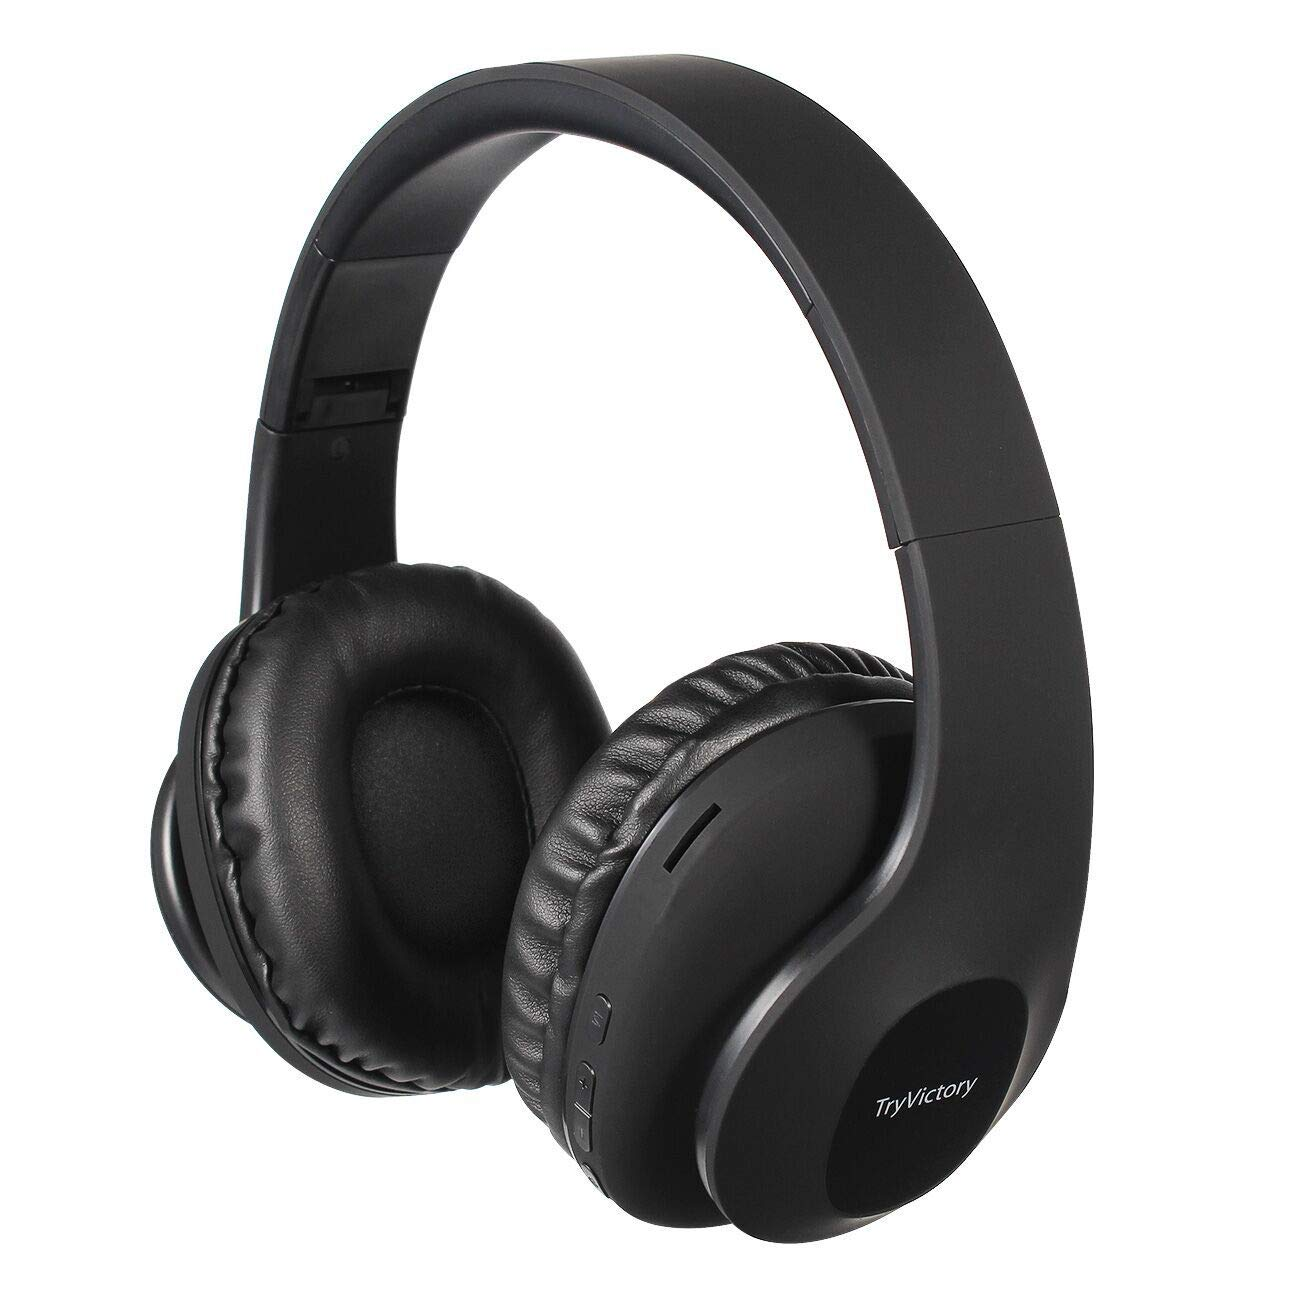 Bluetooth Headphones Over Ear, 15 Hrs Wireless Headphones, Foldable, Soft Memory-Protein Earmuffs,Rechargeable Hi-Fi Stereo Headset,CVC6.0 Headphones with Mic for Cellphone/Tablet/TV(Black)